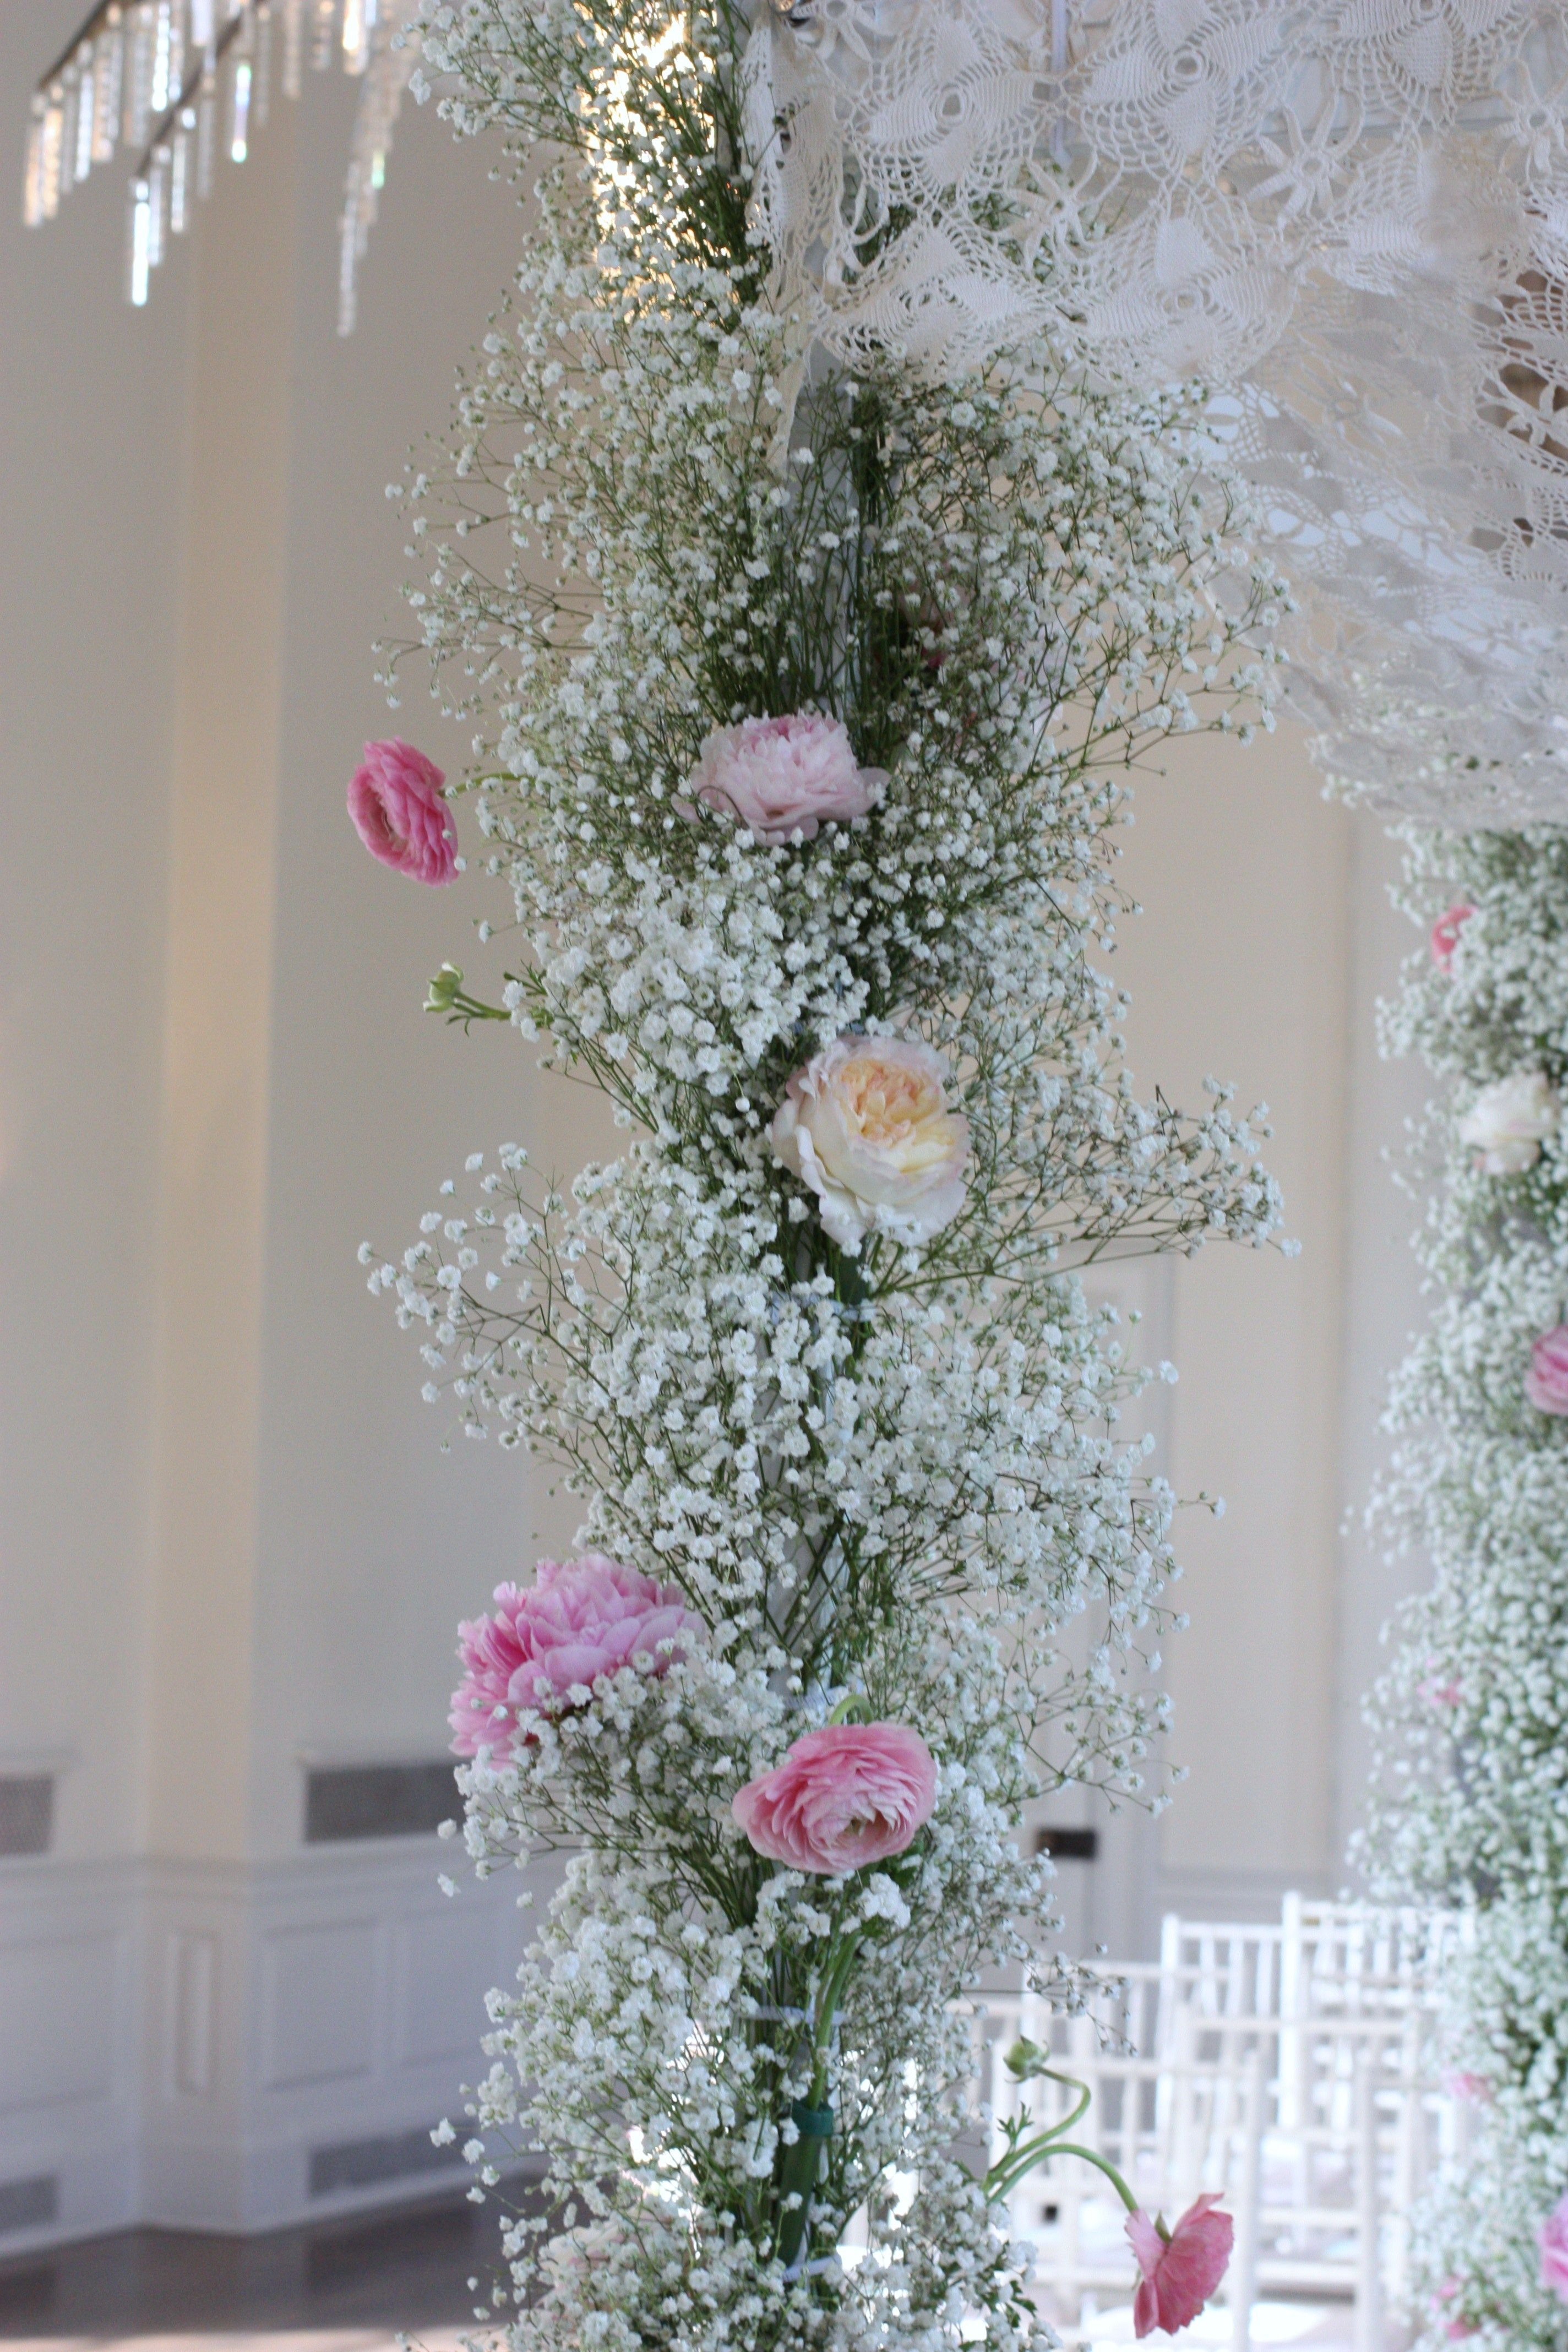 Baby S Breath Need To Figure Out What Kind Of Pole To Use For Centerpiece Not Quite This High Event Design Inspiration Altar Decorations Floristry Design